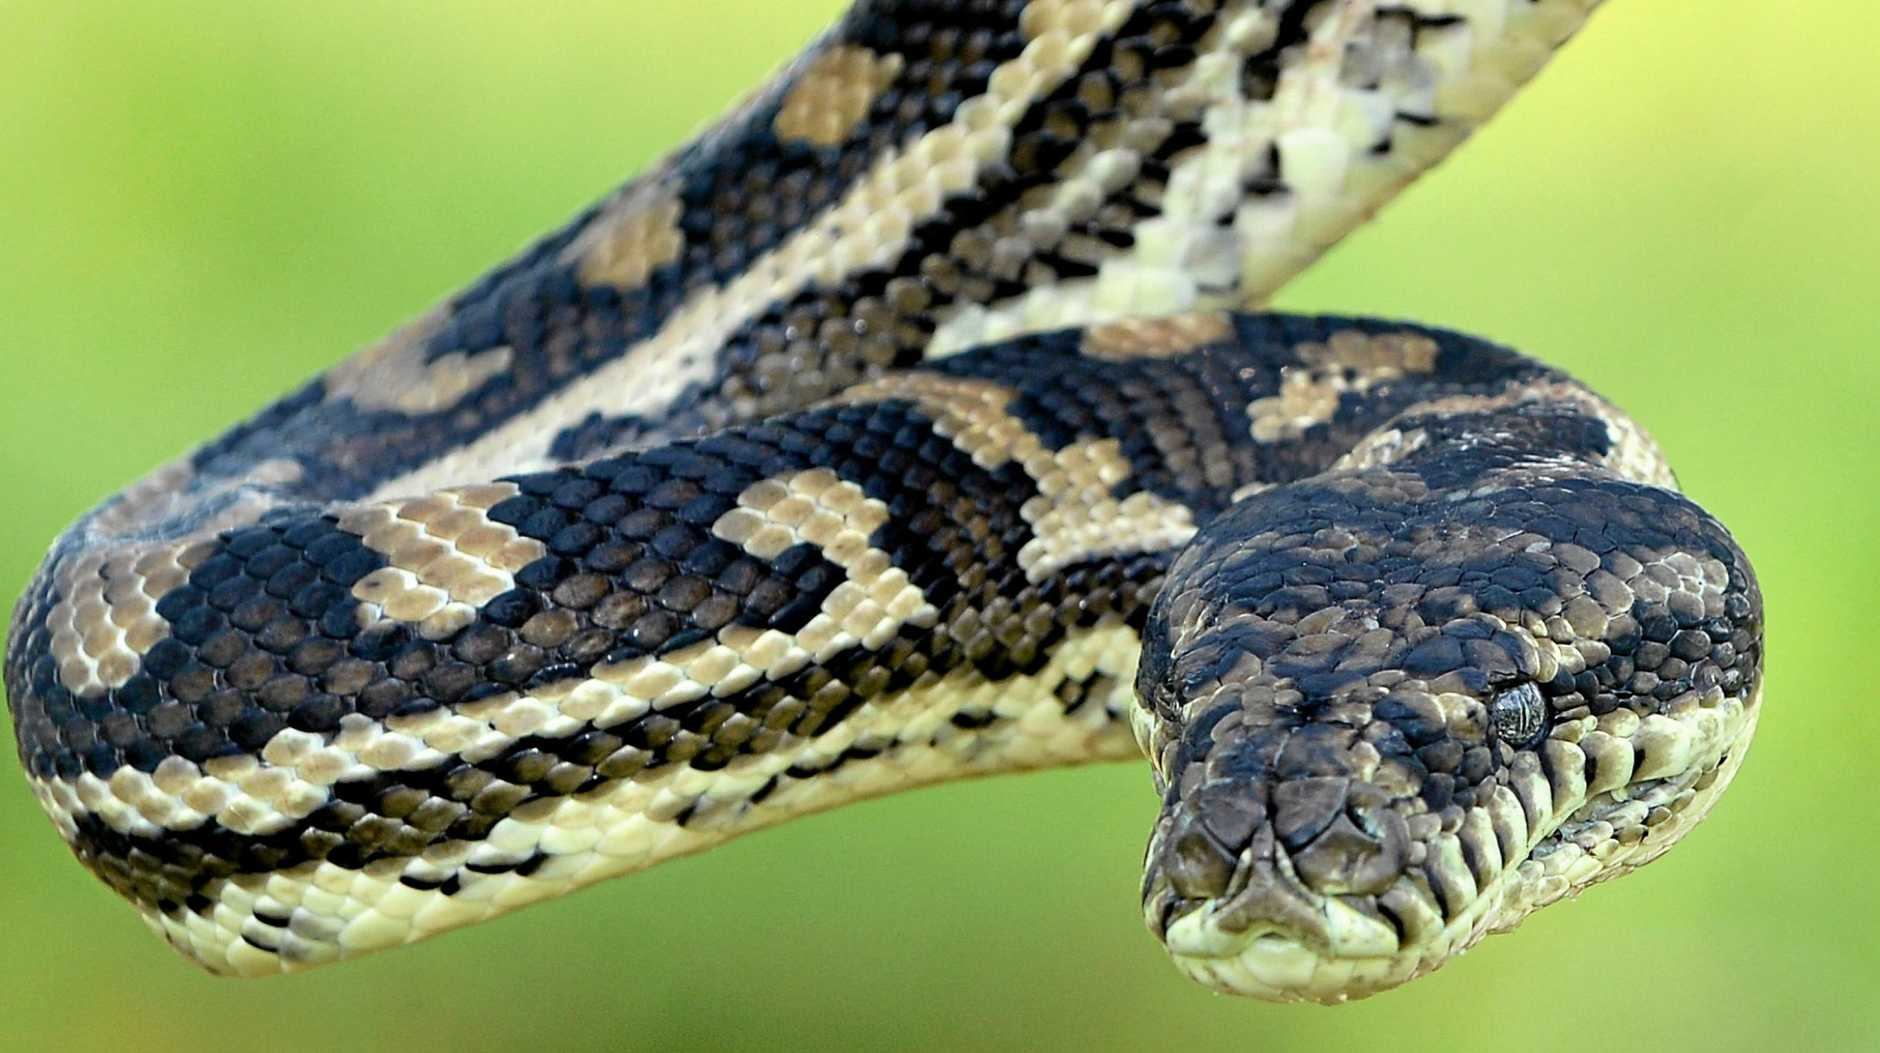 Two snake bites have been reported in the region in the past three days.